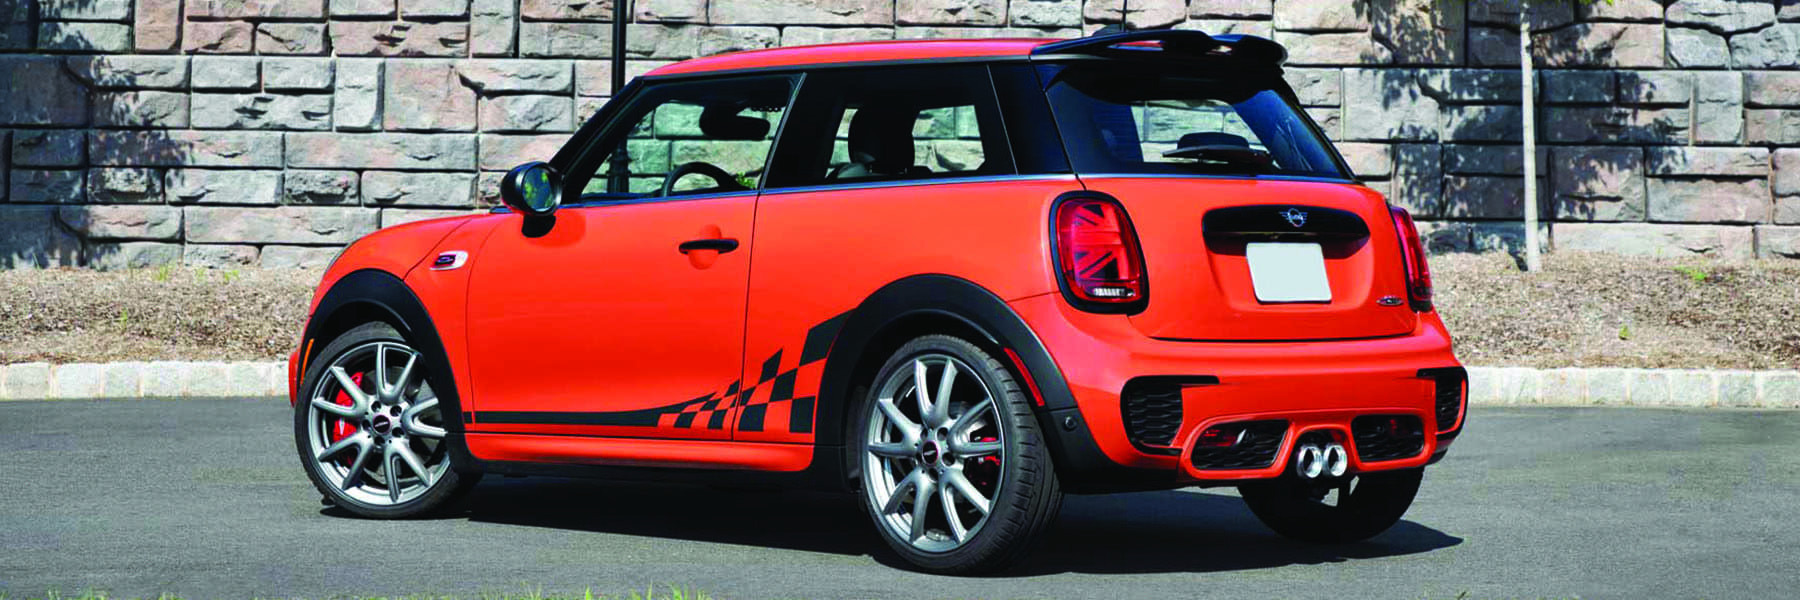 2019 mini john cooper works hardtop international orange edition mini of wichita. Black Bedroom Furniture Sets. Home Design Ideas